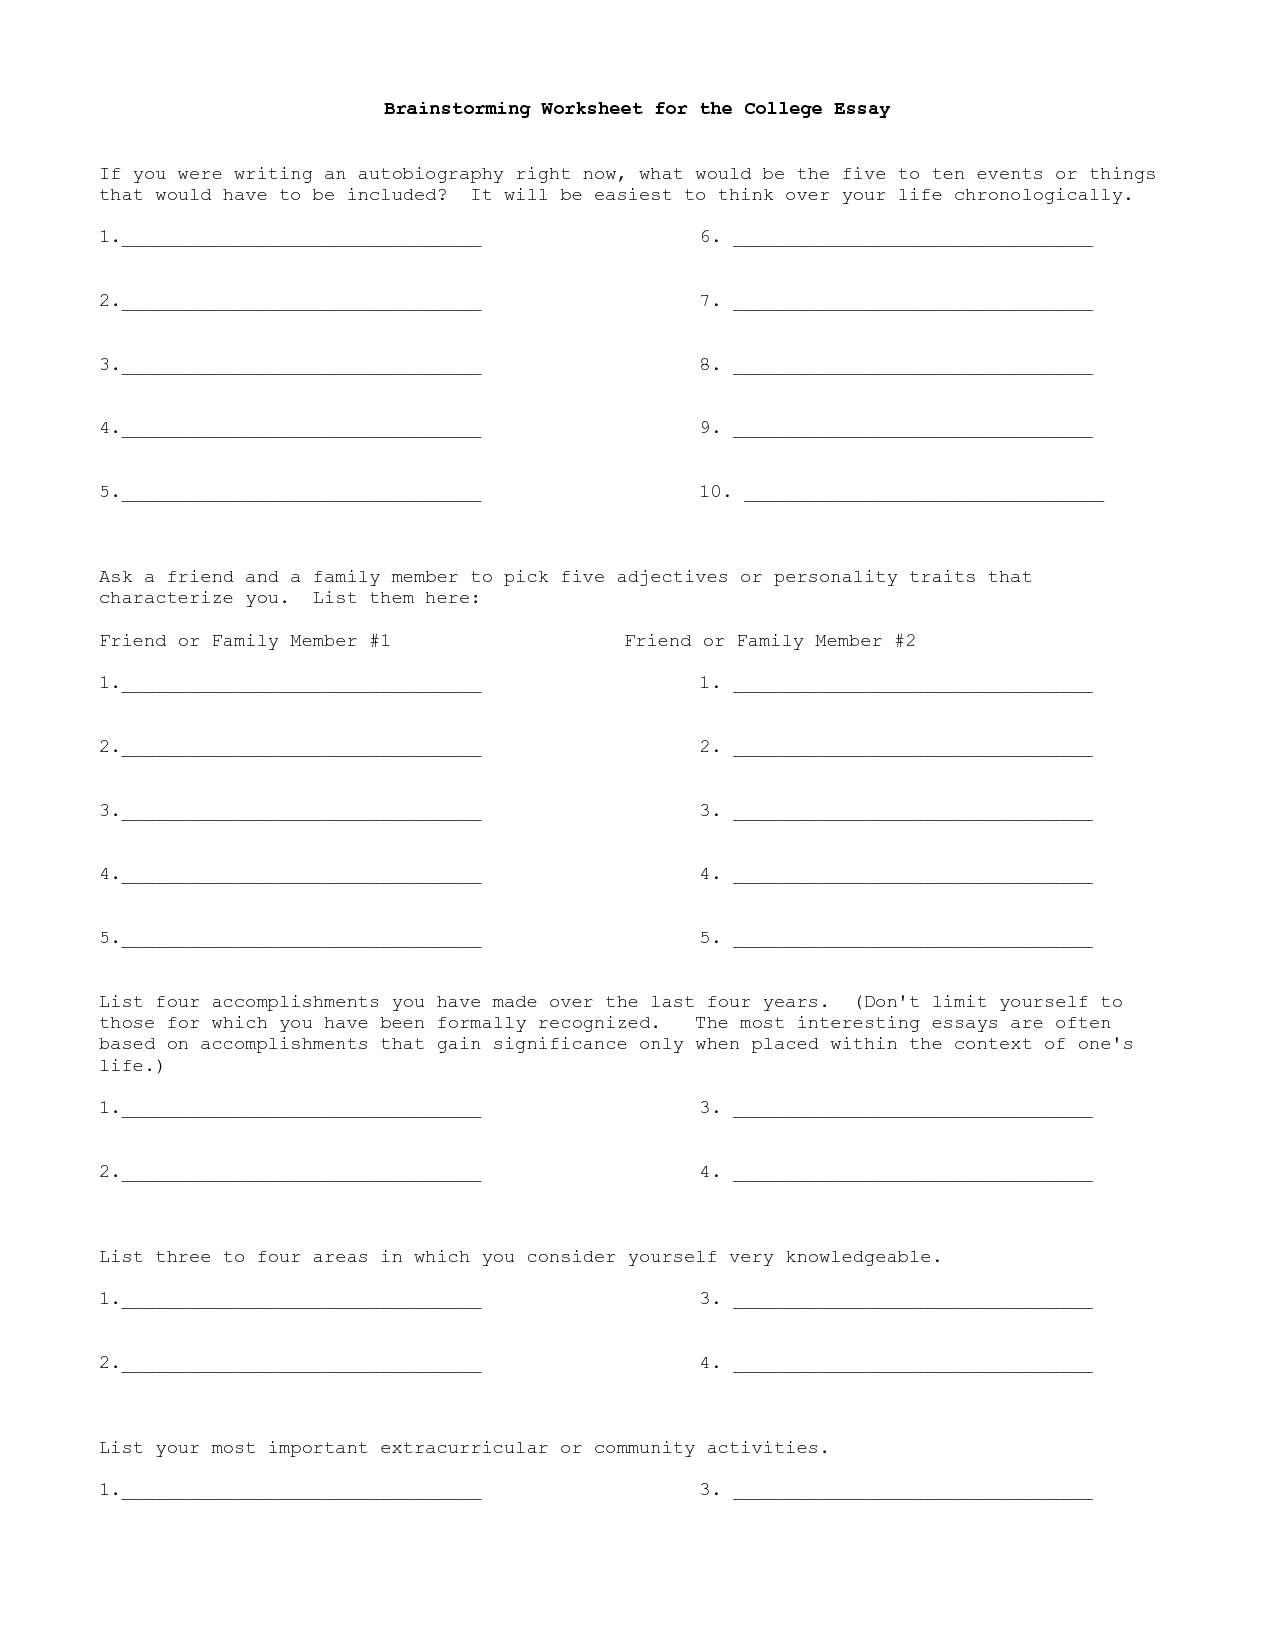 Essay Writing Brainstorming Worksheets